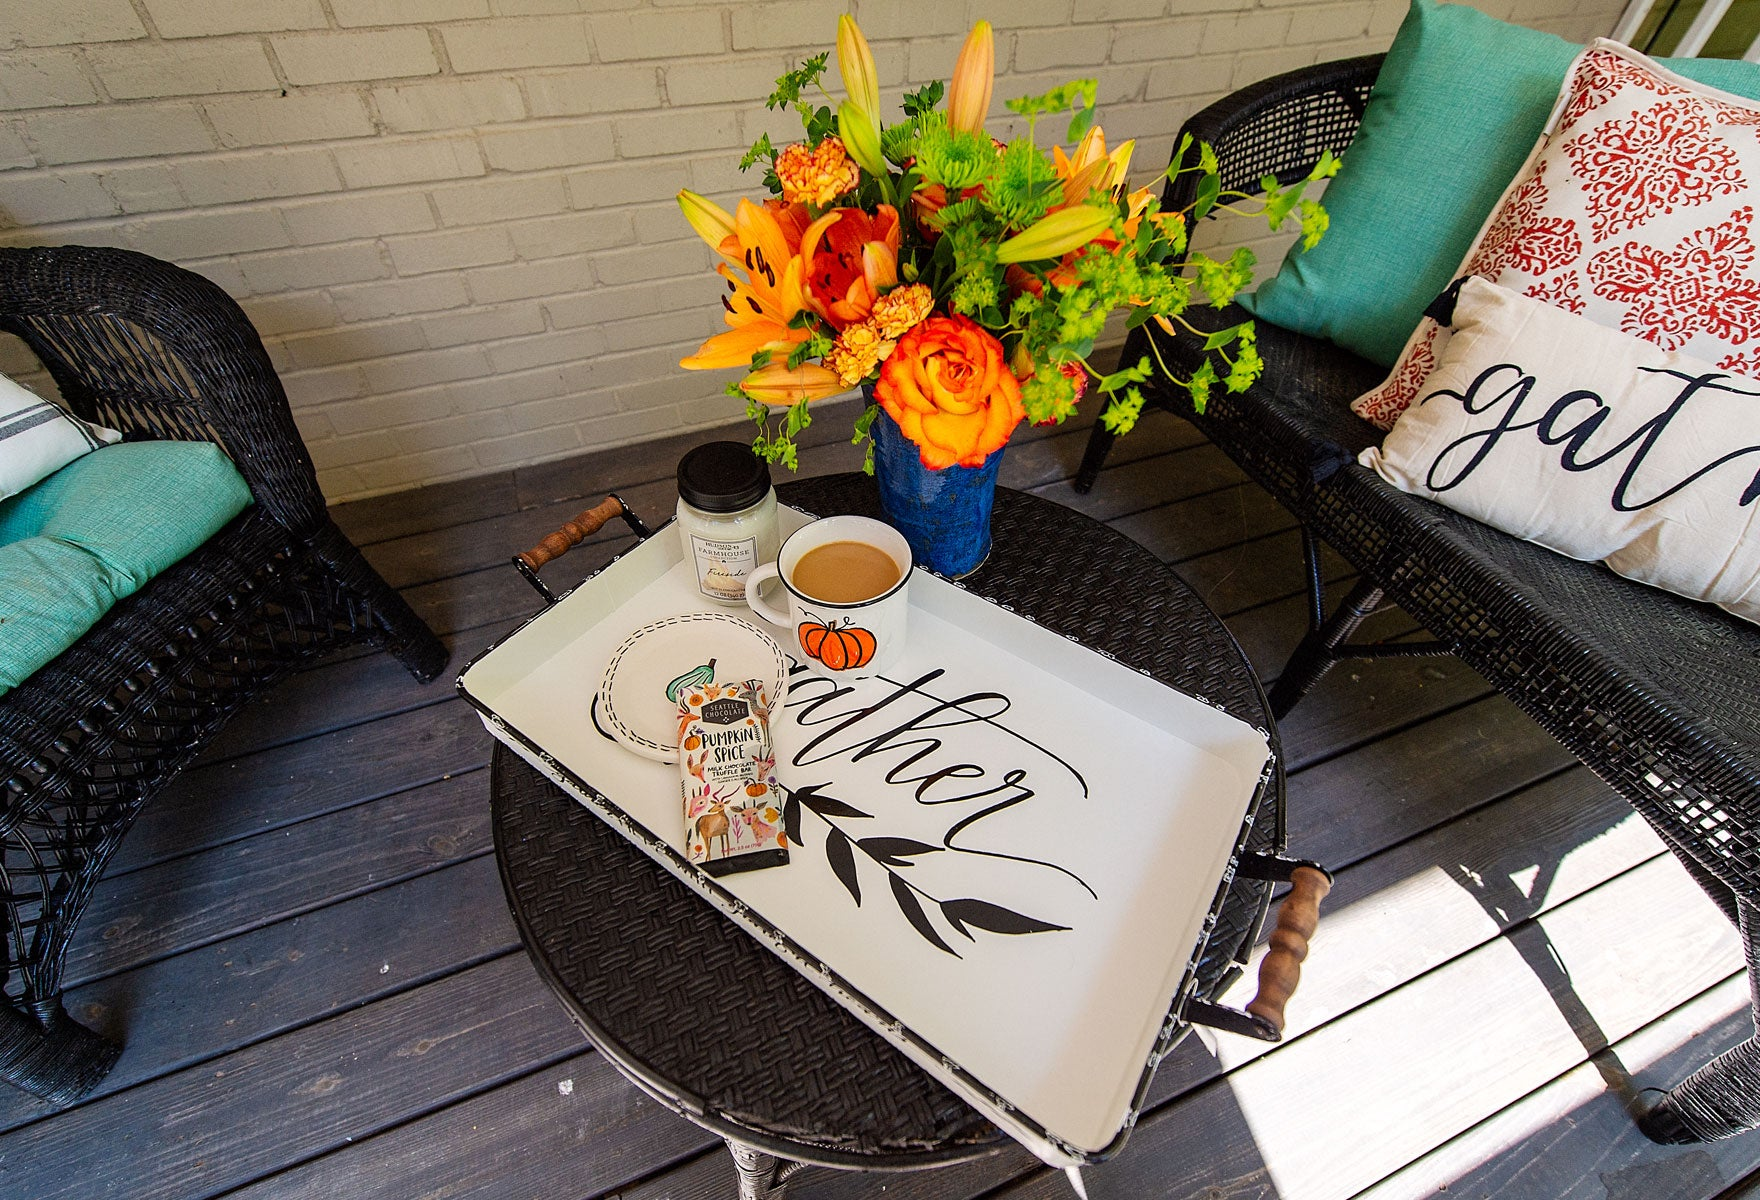 Fall Porch Decor With Chairs and Table and Tea